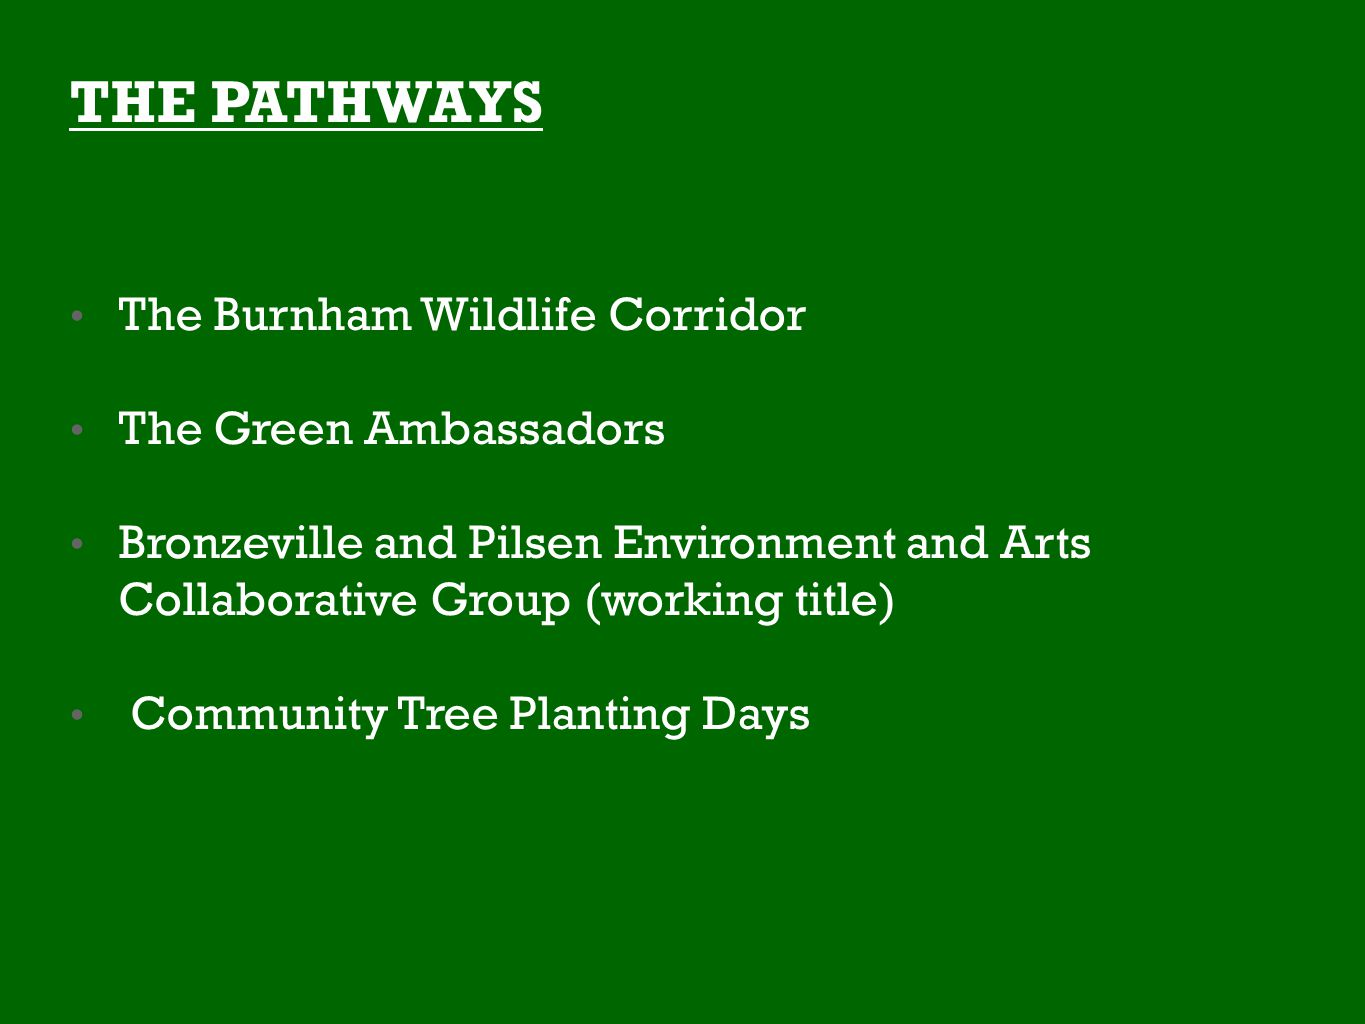 THE PATHWAYS The Burnham Wildlife Corridor The Green Ambassadors Bronzeville and Pilsen Environment and Arts Collaborative Group (working title) Community Tree Planting Days